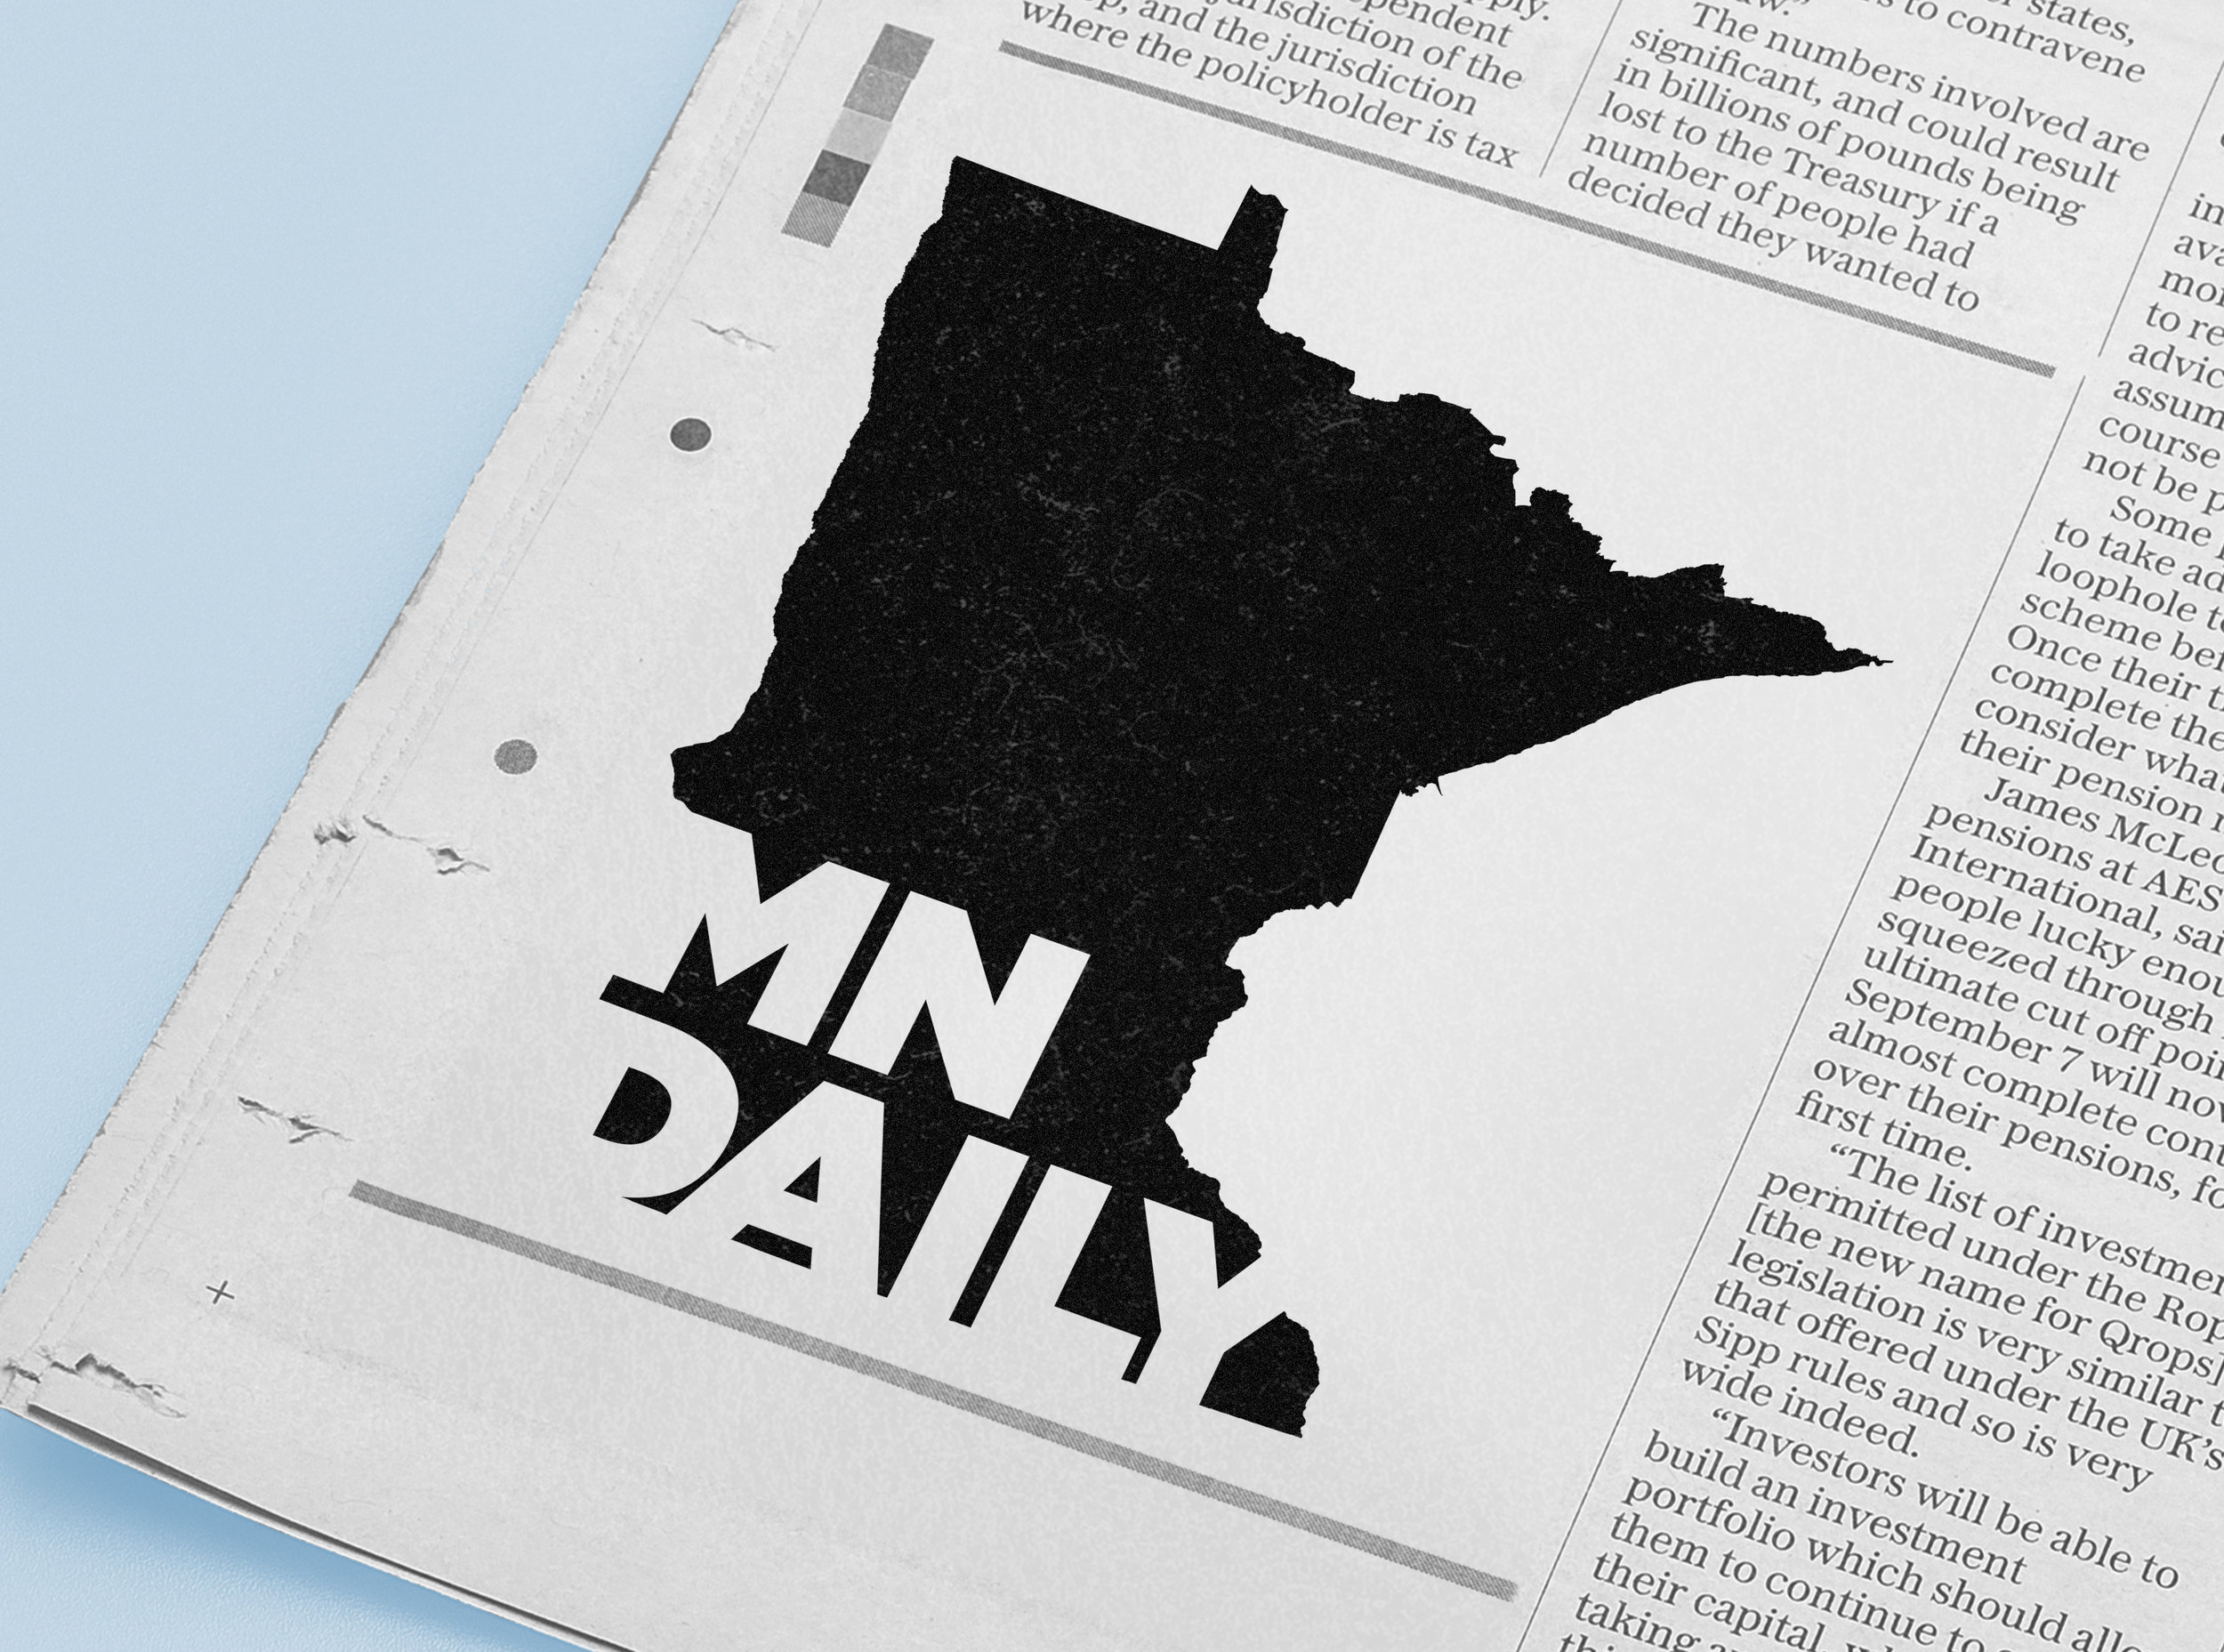 The Minnesota Daily